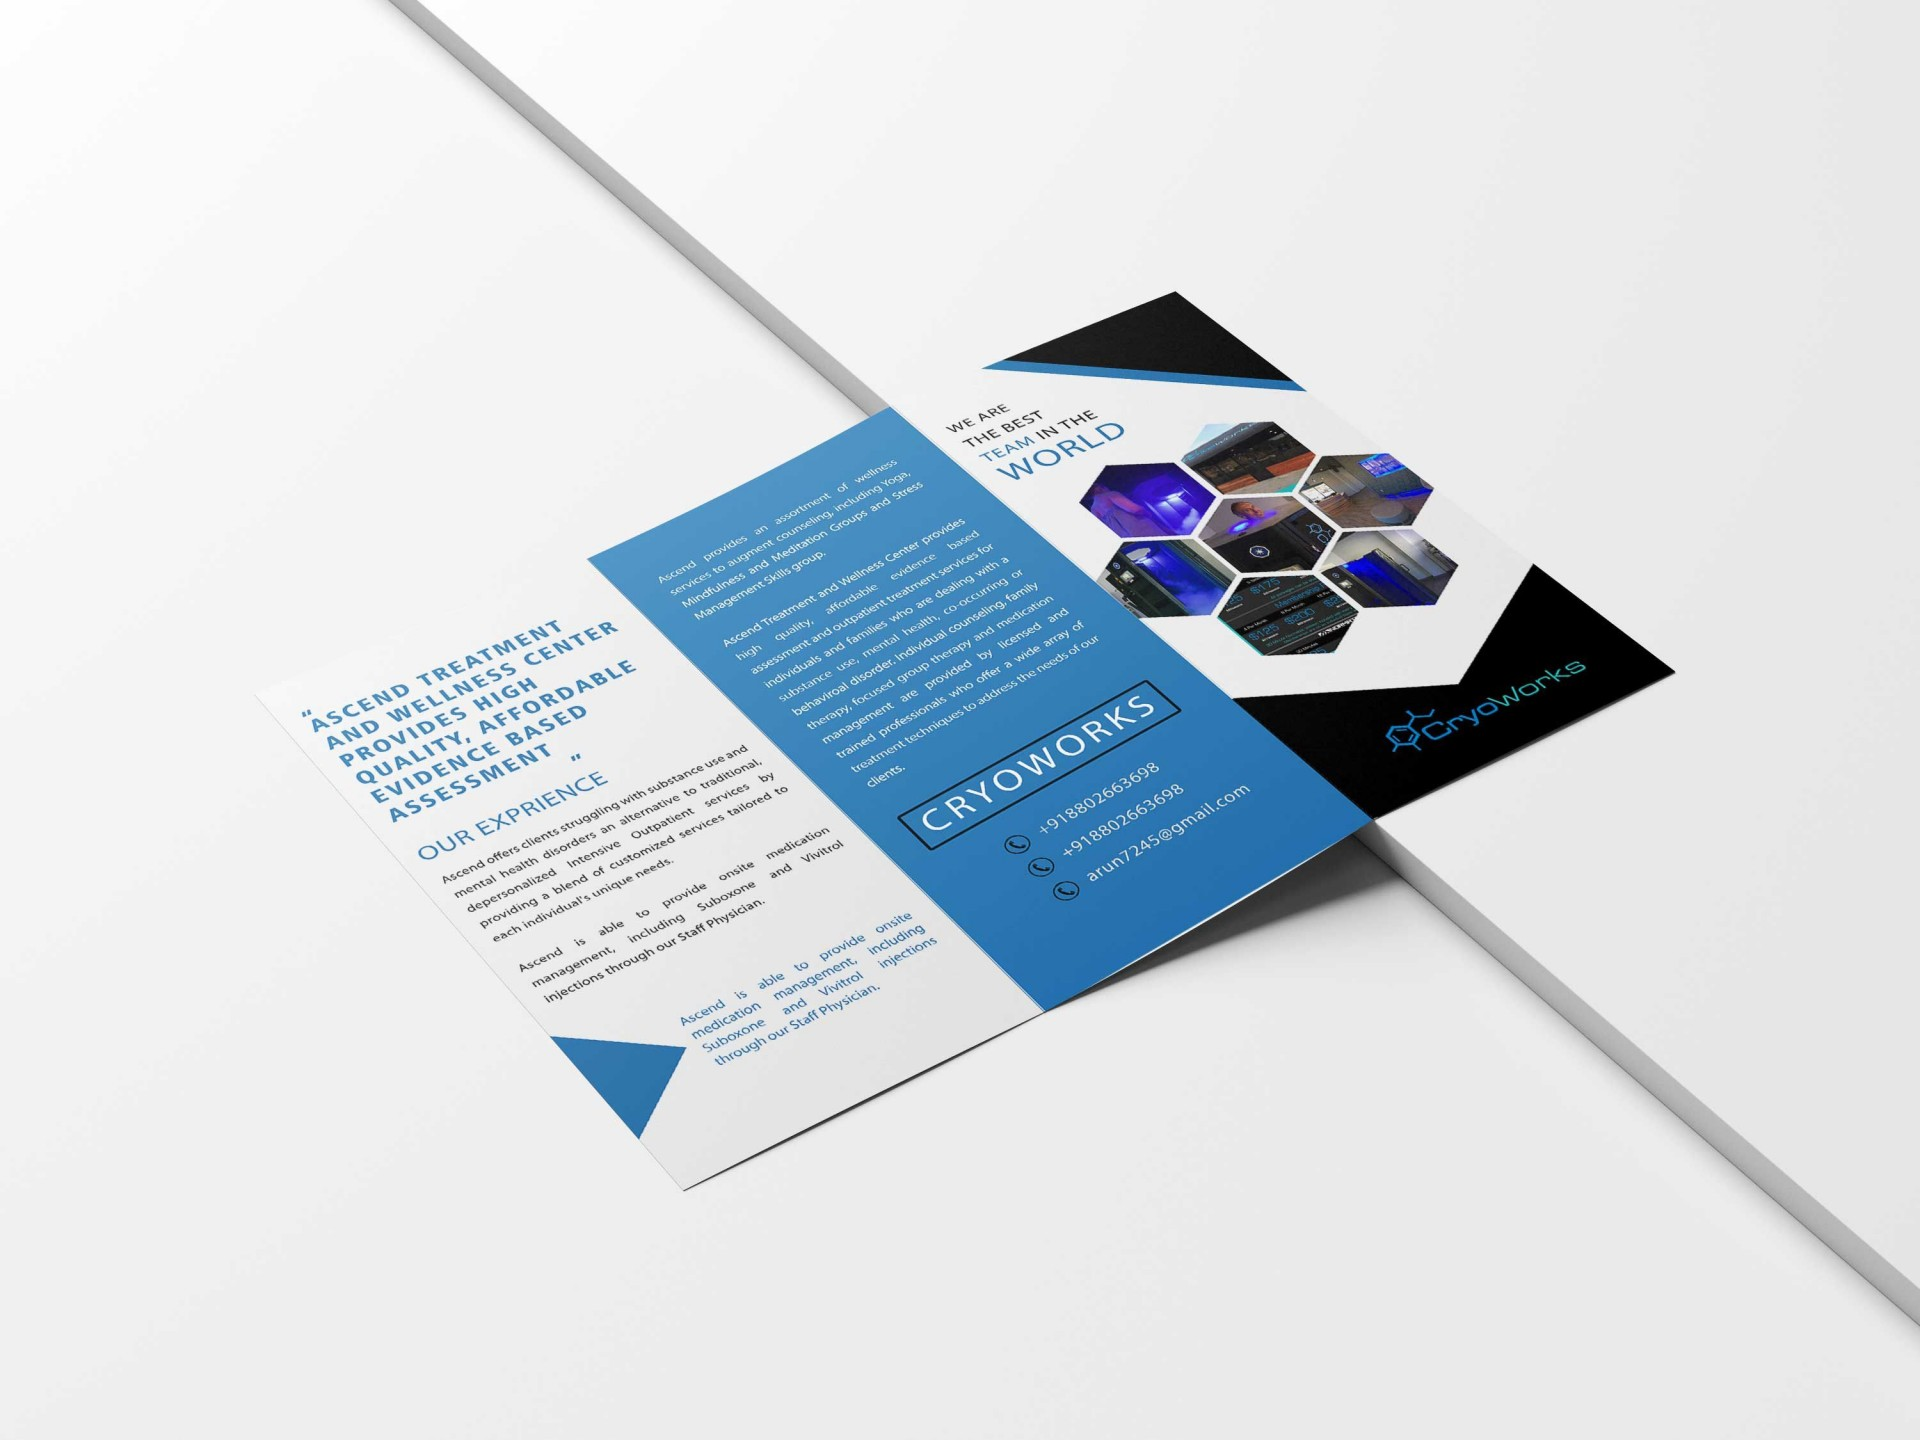 005 Magnificent Brochure Design Template Psd Free Download Concept  Hotel1920